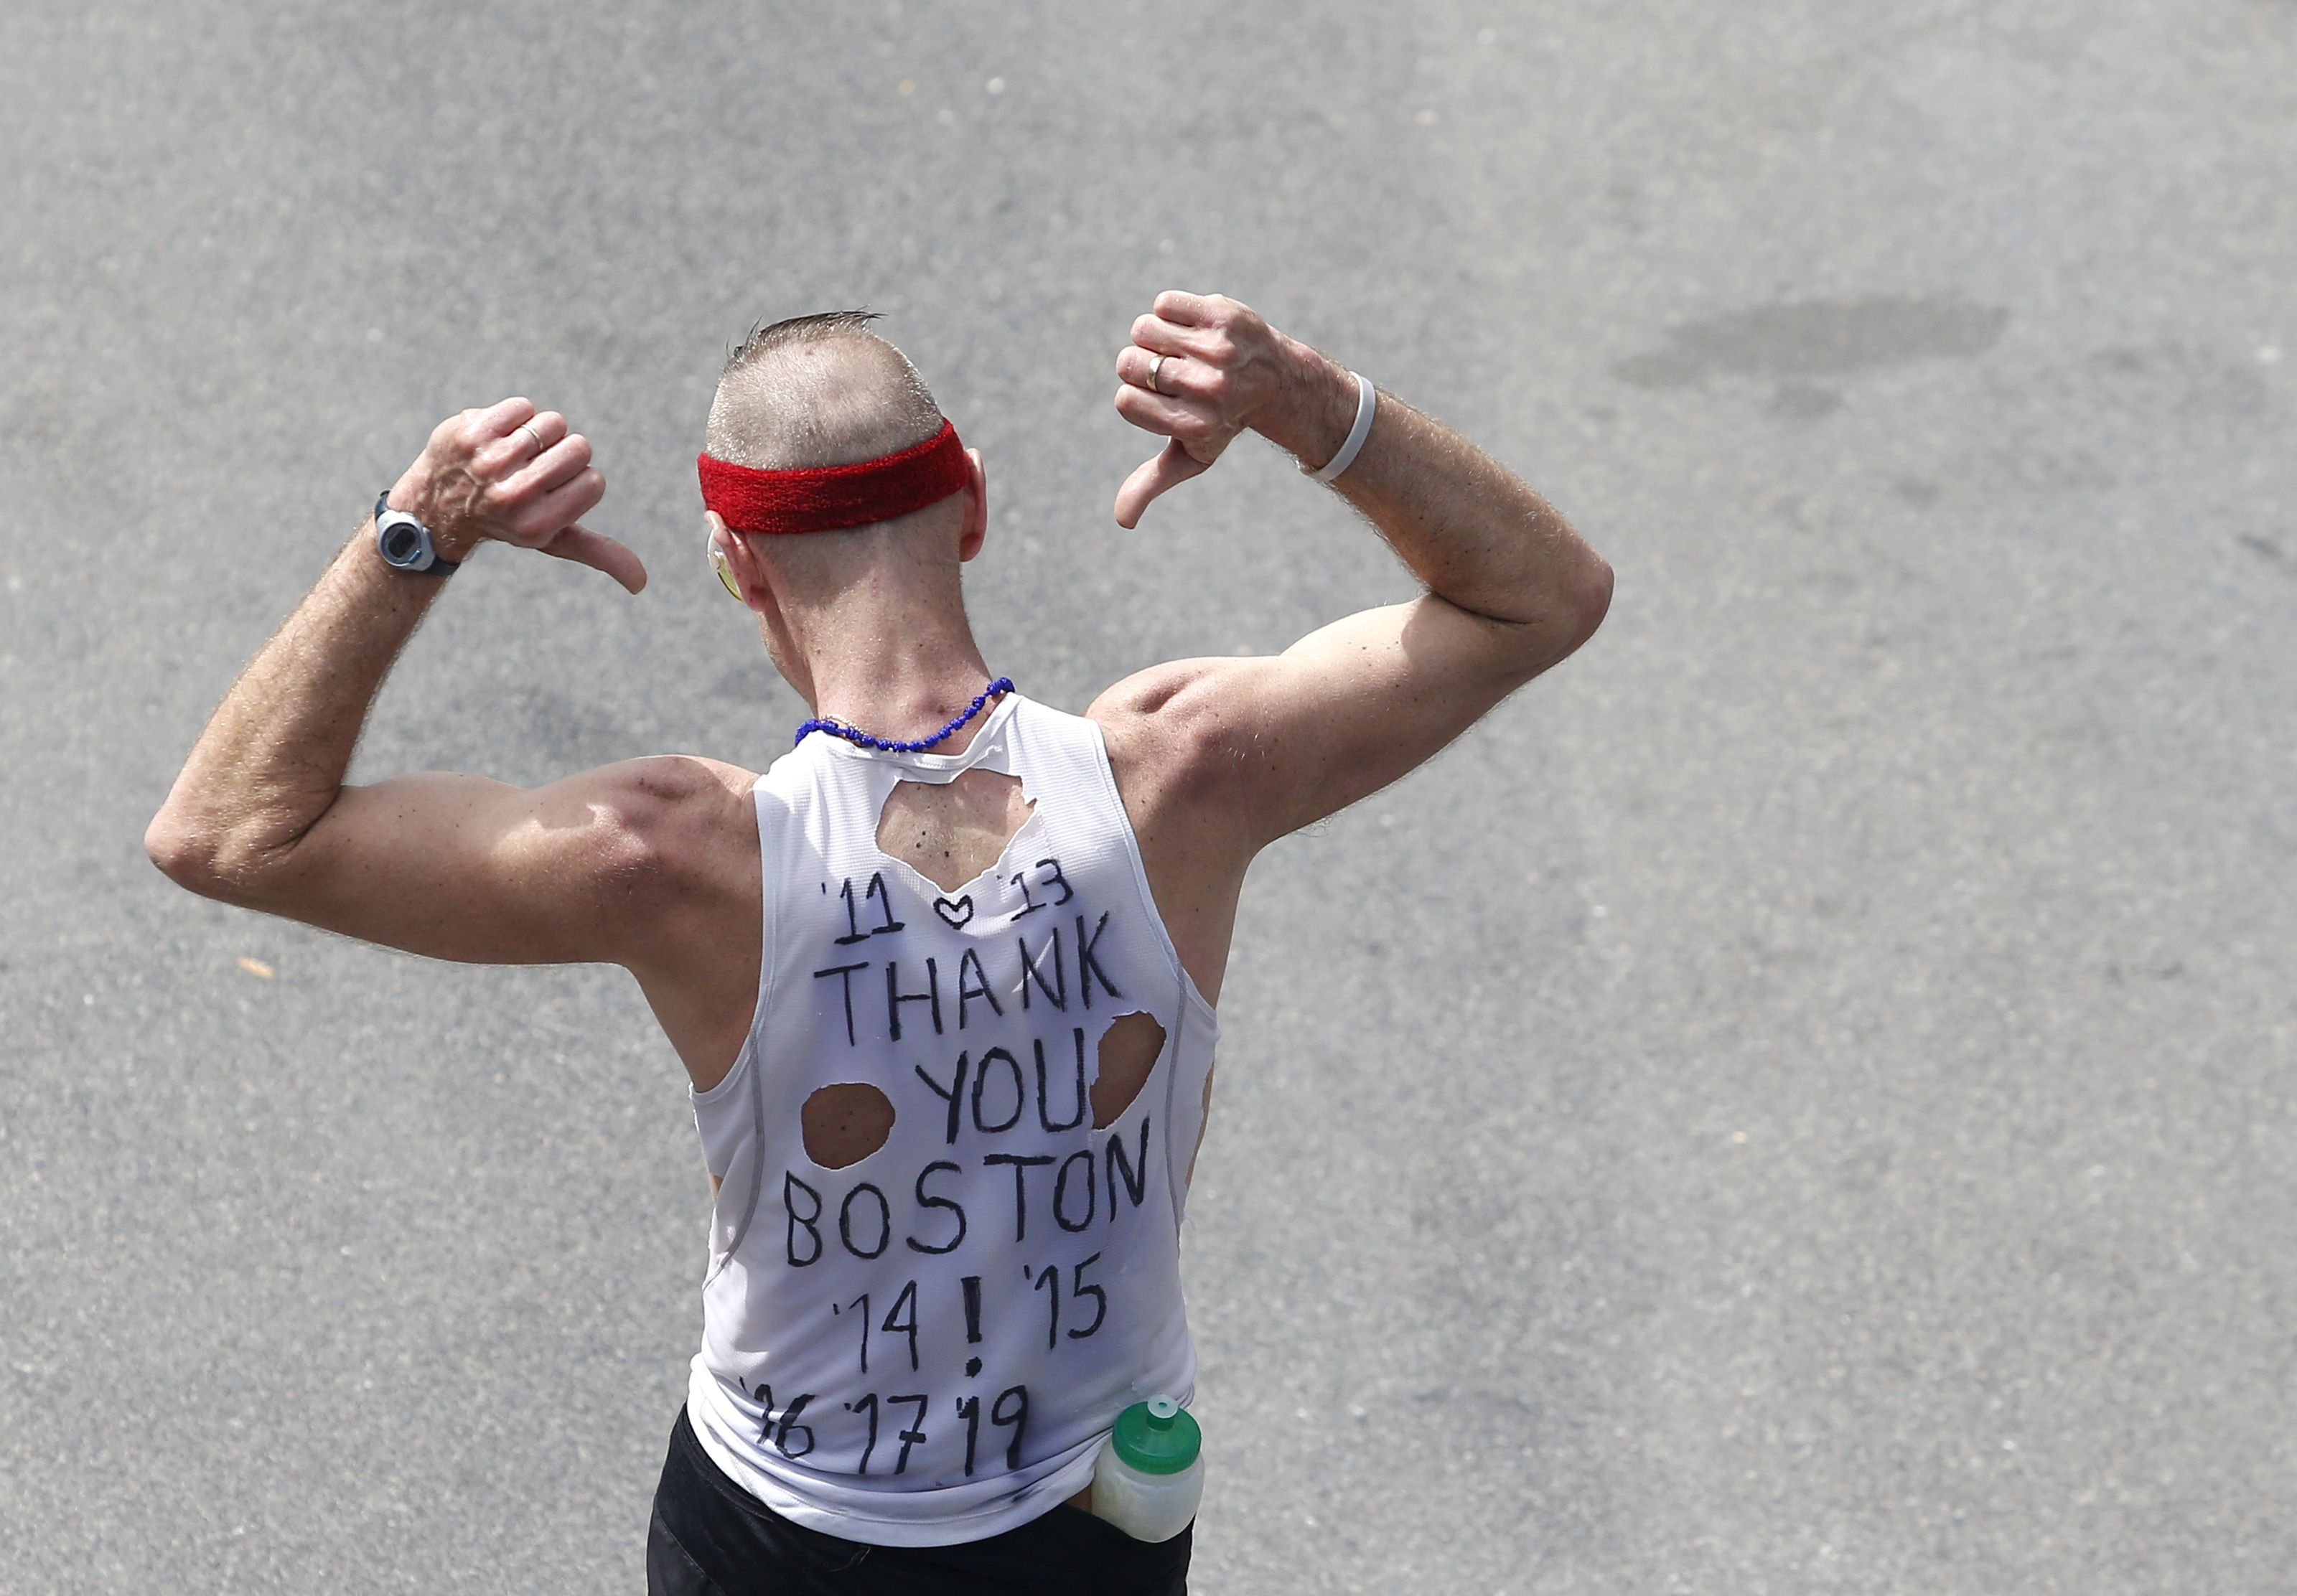 Even With Tougher Standards, Plenty of People Are Qualifying for Boston